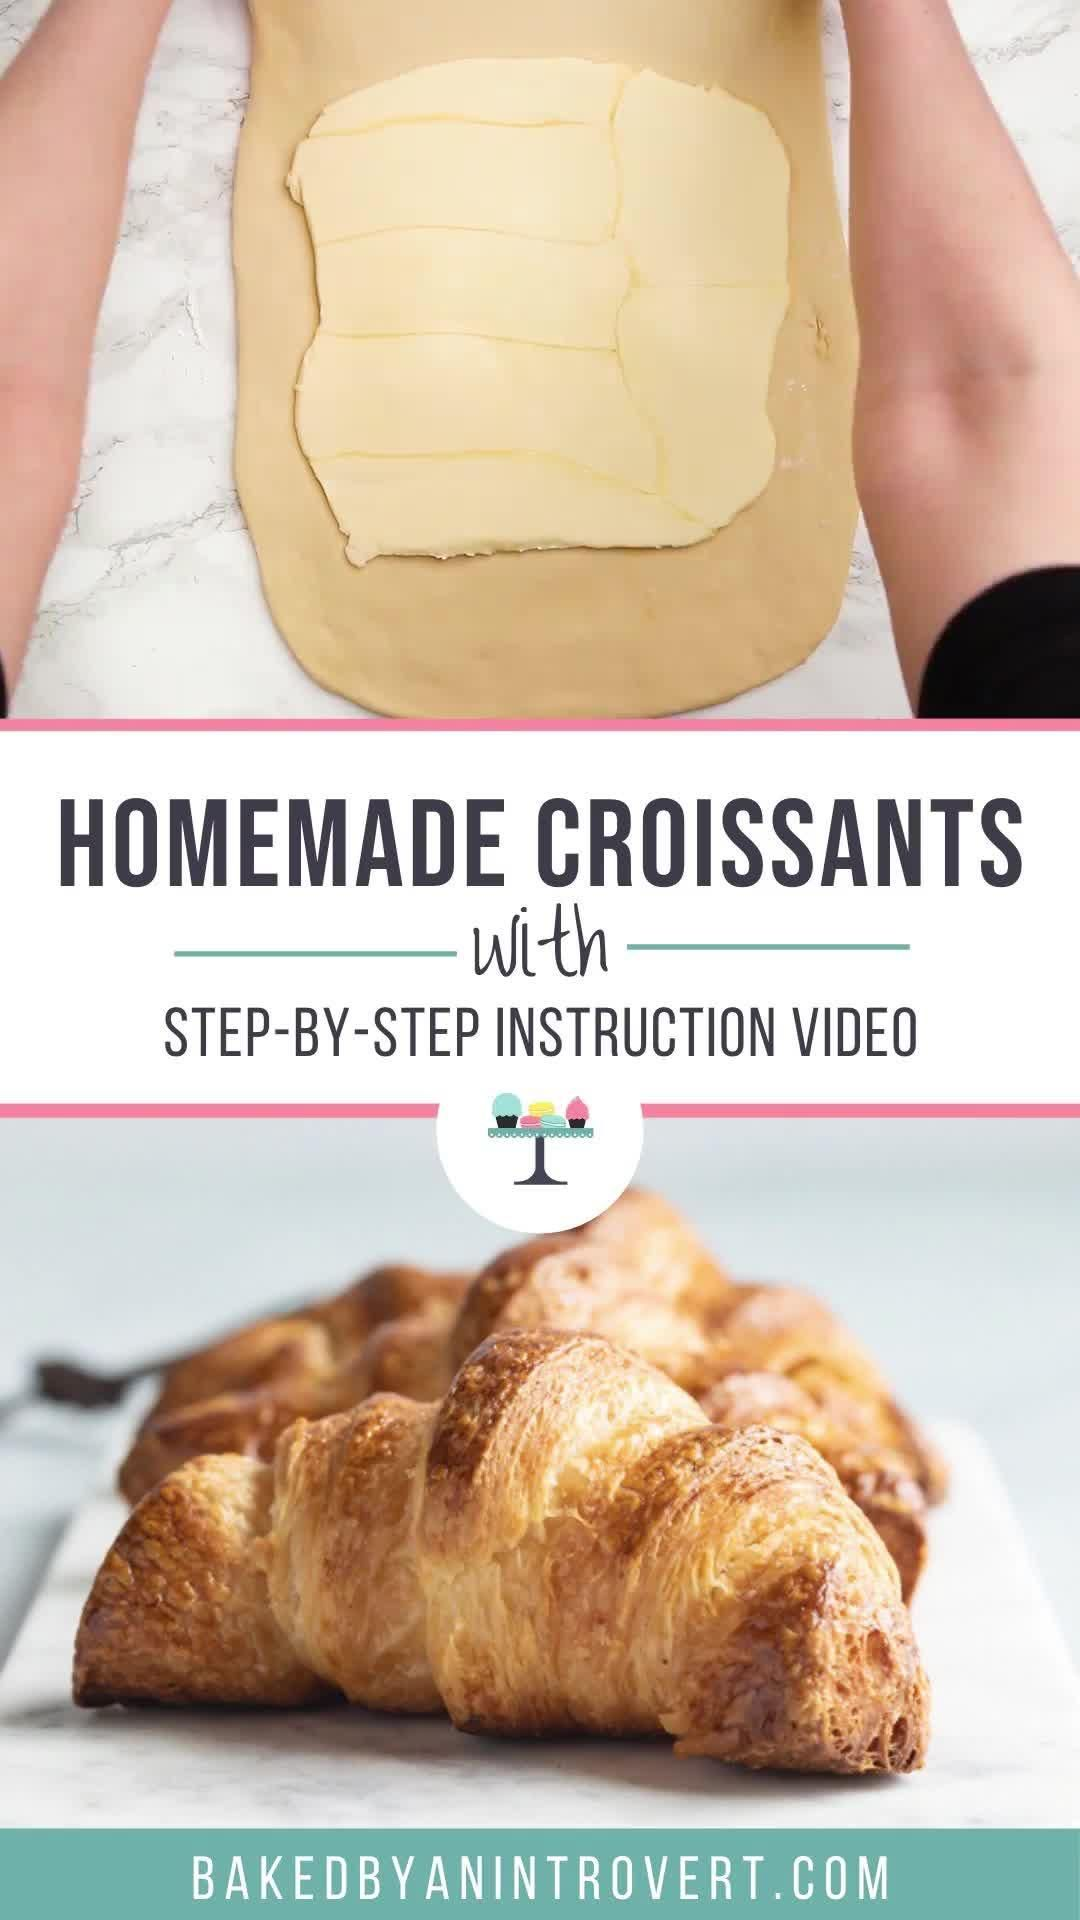 Learn to make buttery, flaky homemade croissants with this easy to follow recipe and tutorial. You can have this classic bakery-style pastry in your very own kitchen!